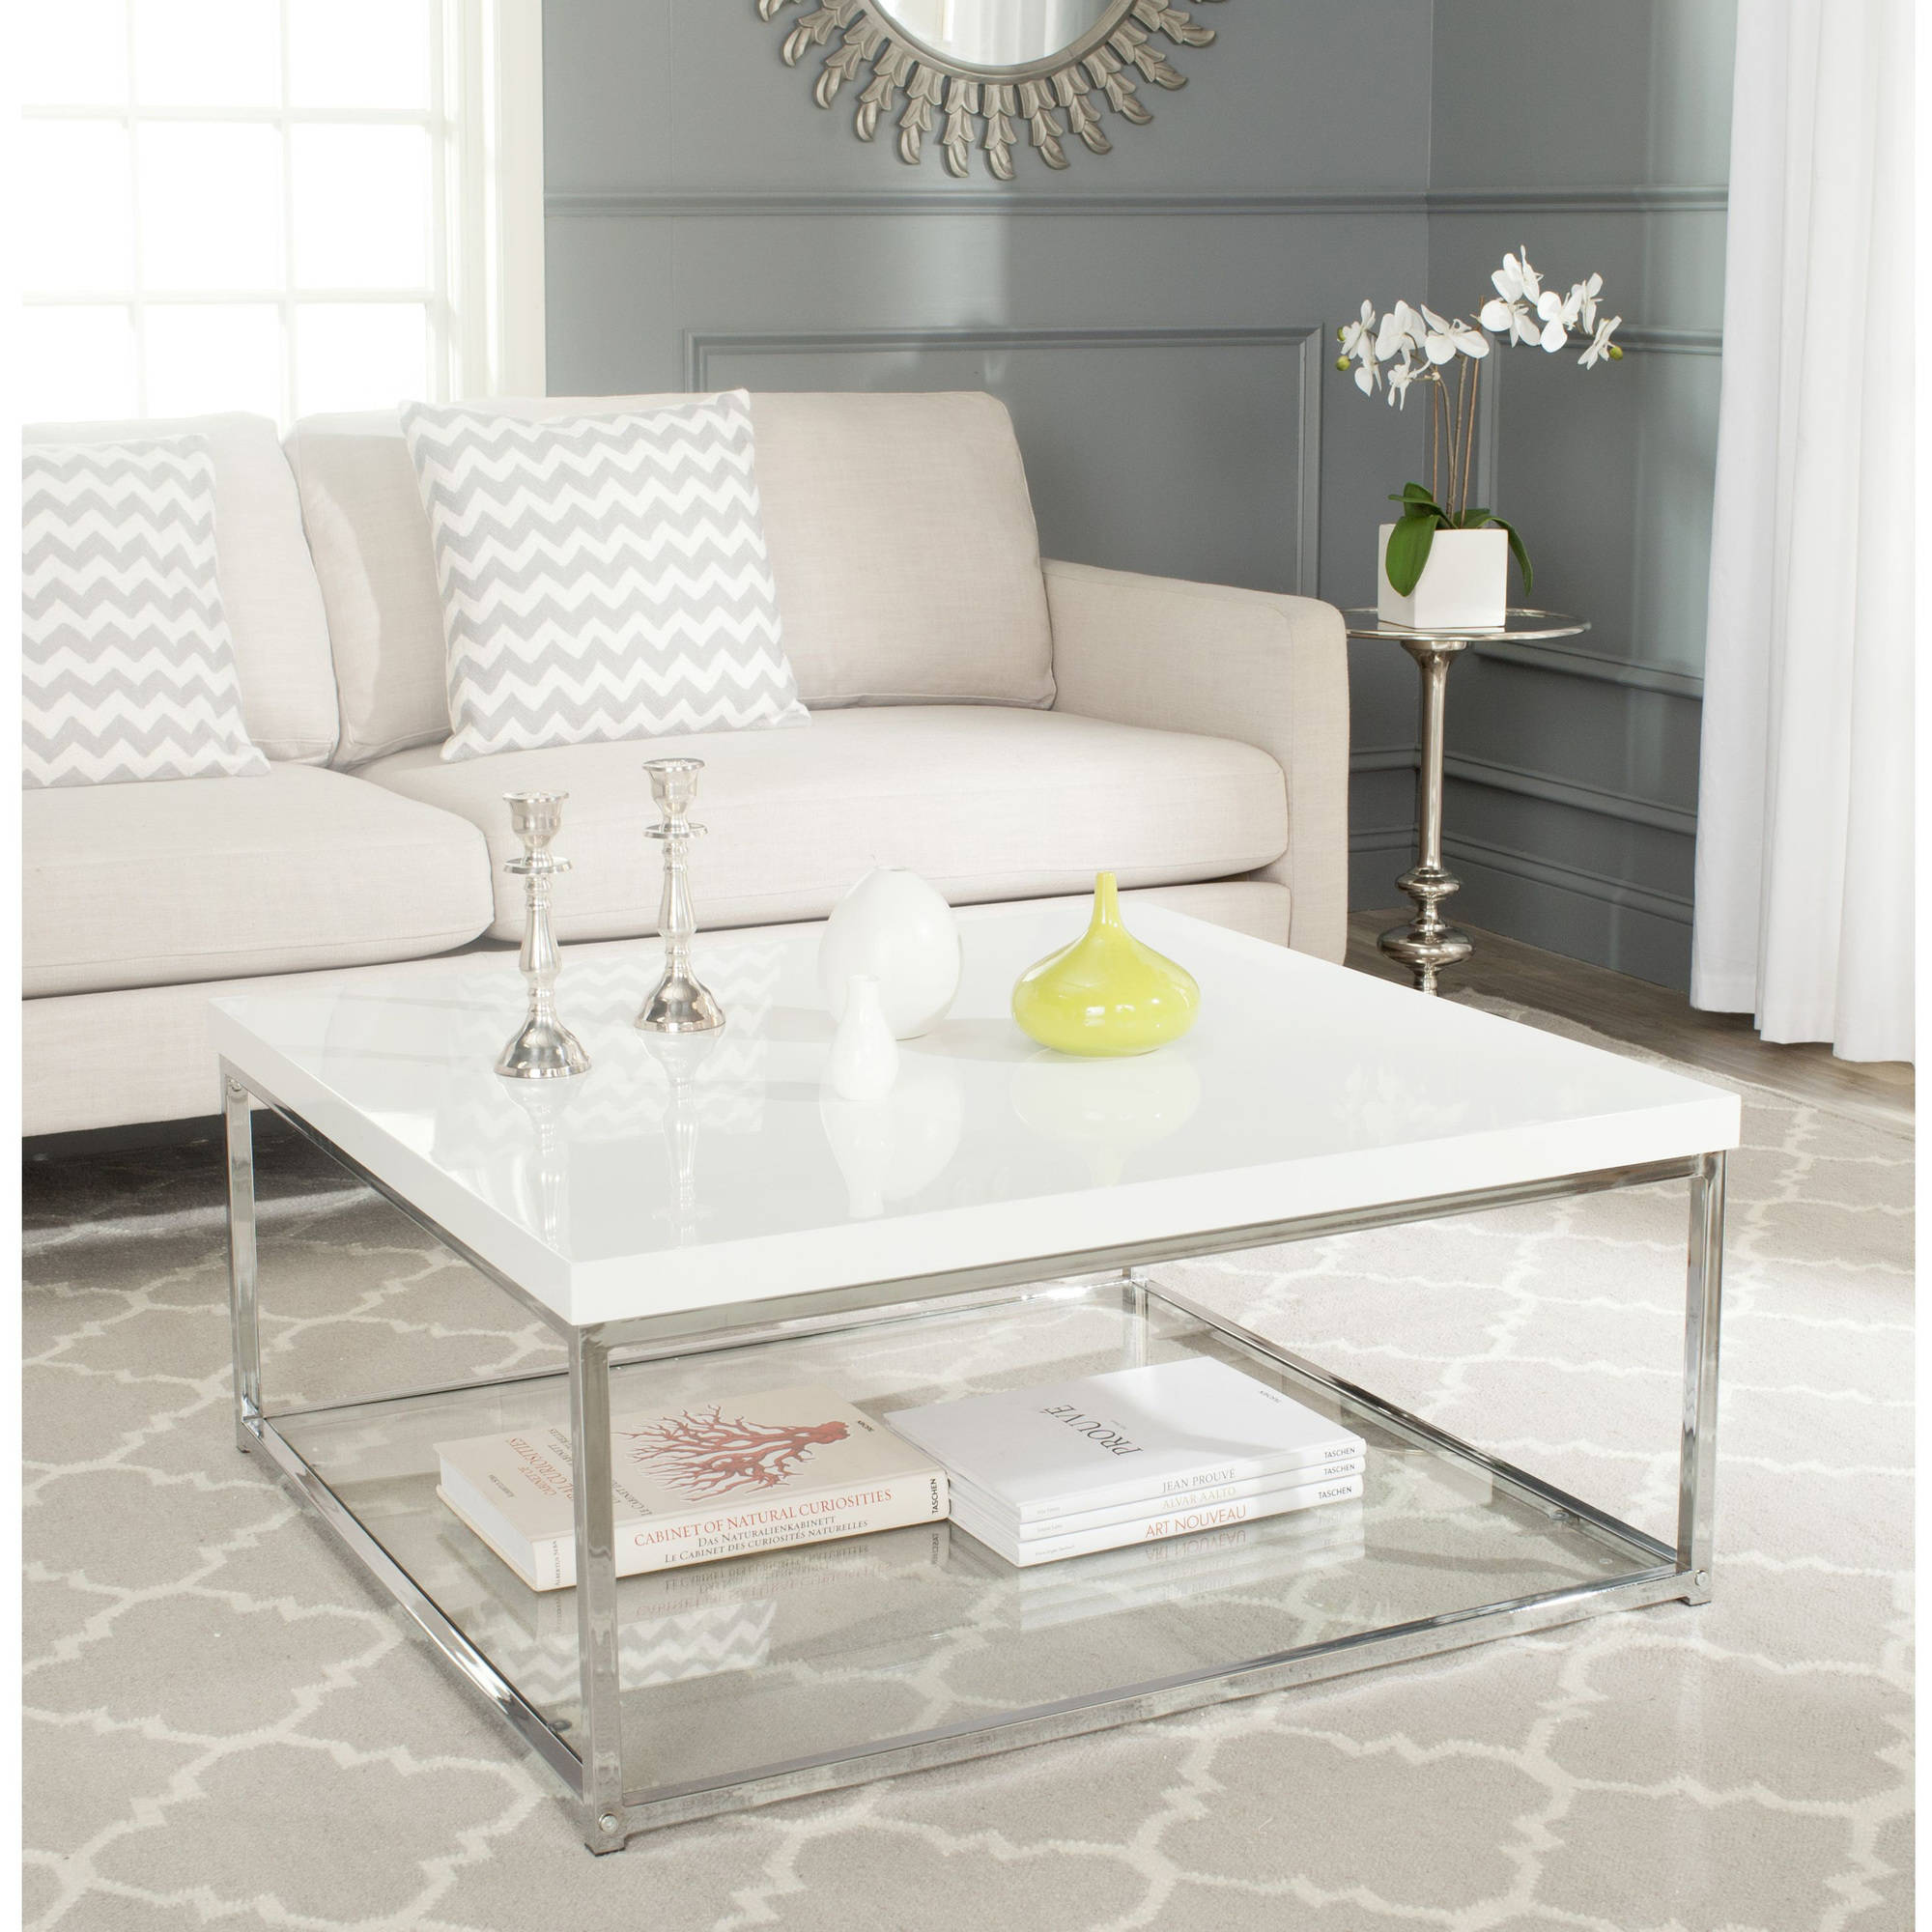 Safavieh Malone Chrome High Gloss Coffee Table, Multiple Colors